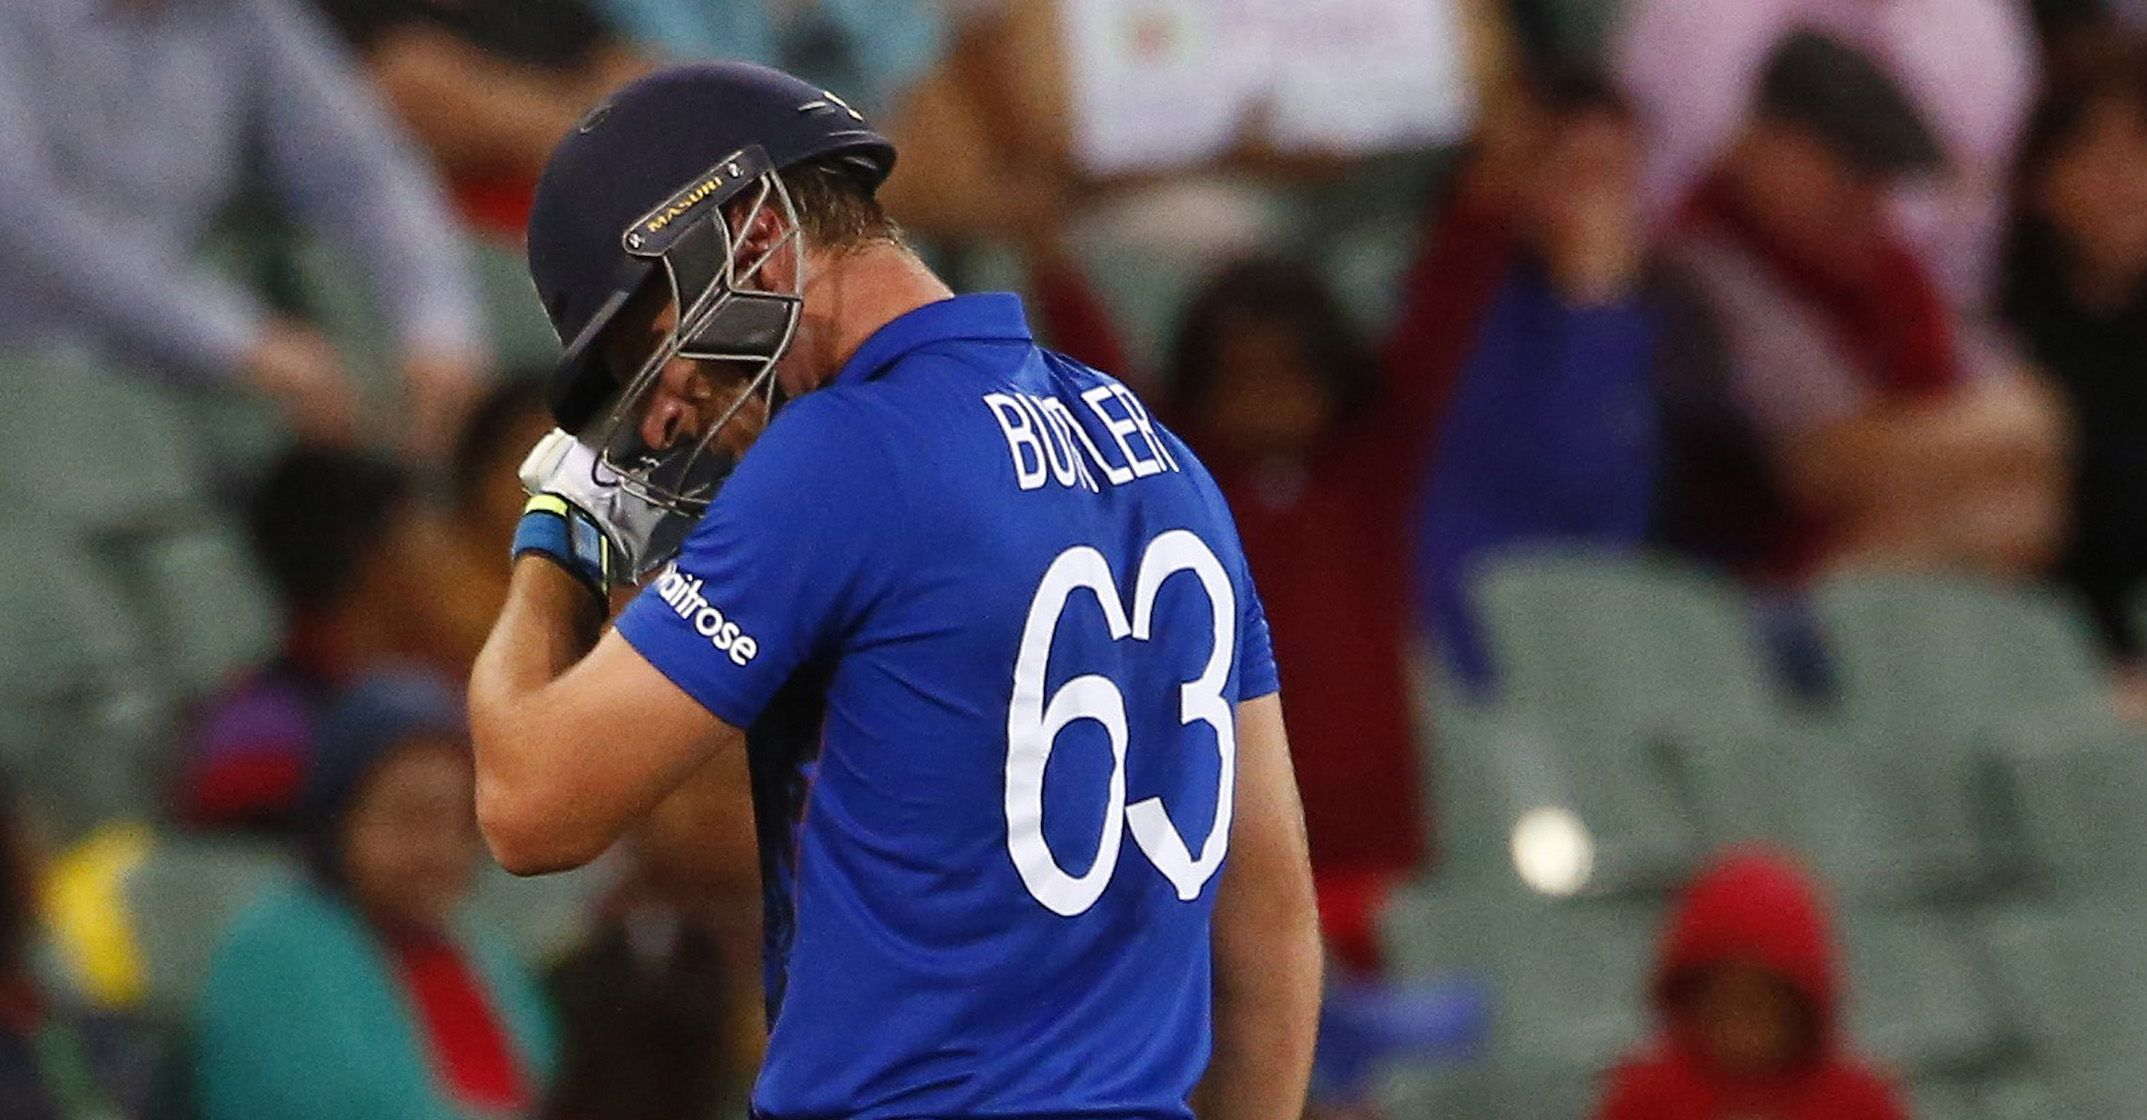 England batsman Jos Buttler walks off the field after getting caught behind by Bangladesh's wicketkeeper Mushfiqur Rahim during their Cricket World Cup match in Adelaide, March 9, 2015.     REUTERS/David Gray   (AUSTRALIA - Tags: SPORT CRICKET) - RTR4SLEB